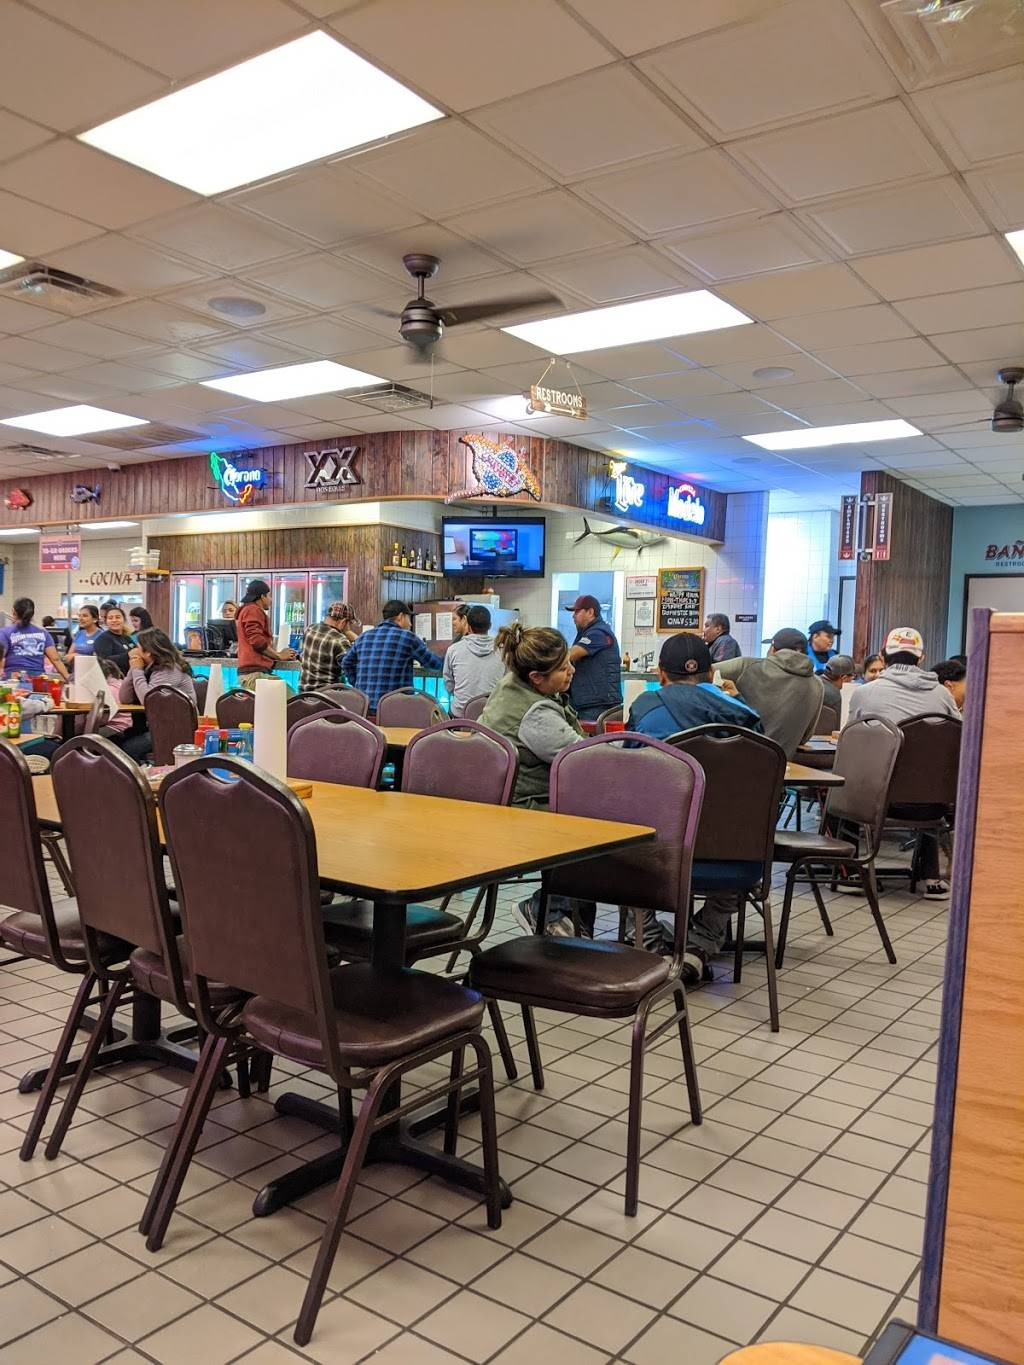 Connies Seafood Market & Restaurant - restaurant  | Photo 3 of 20 | Address: 2525 Airline Dr, Houston, TX 77009, USA | Phone: (713) 868-2144